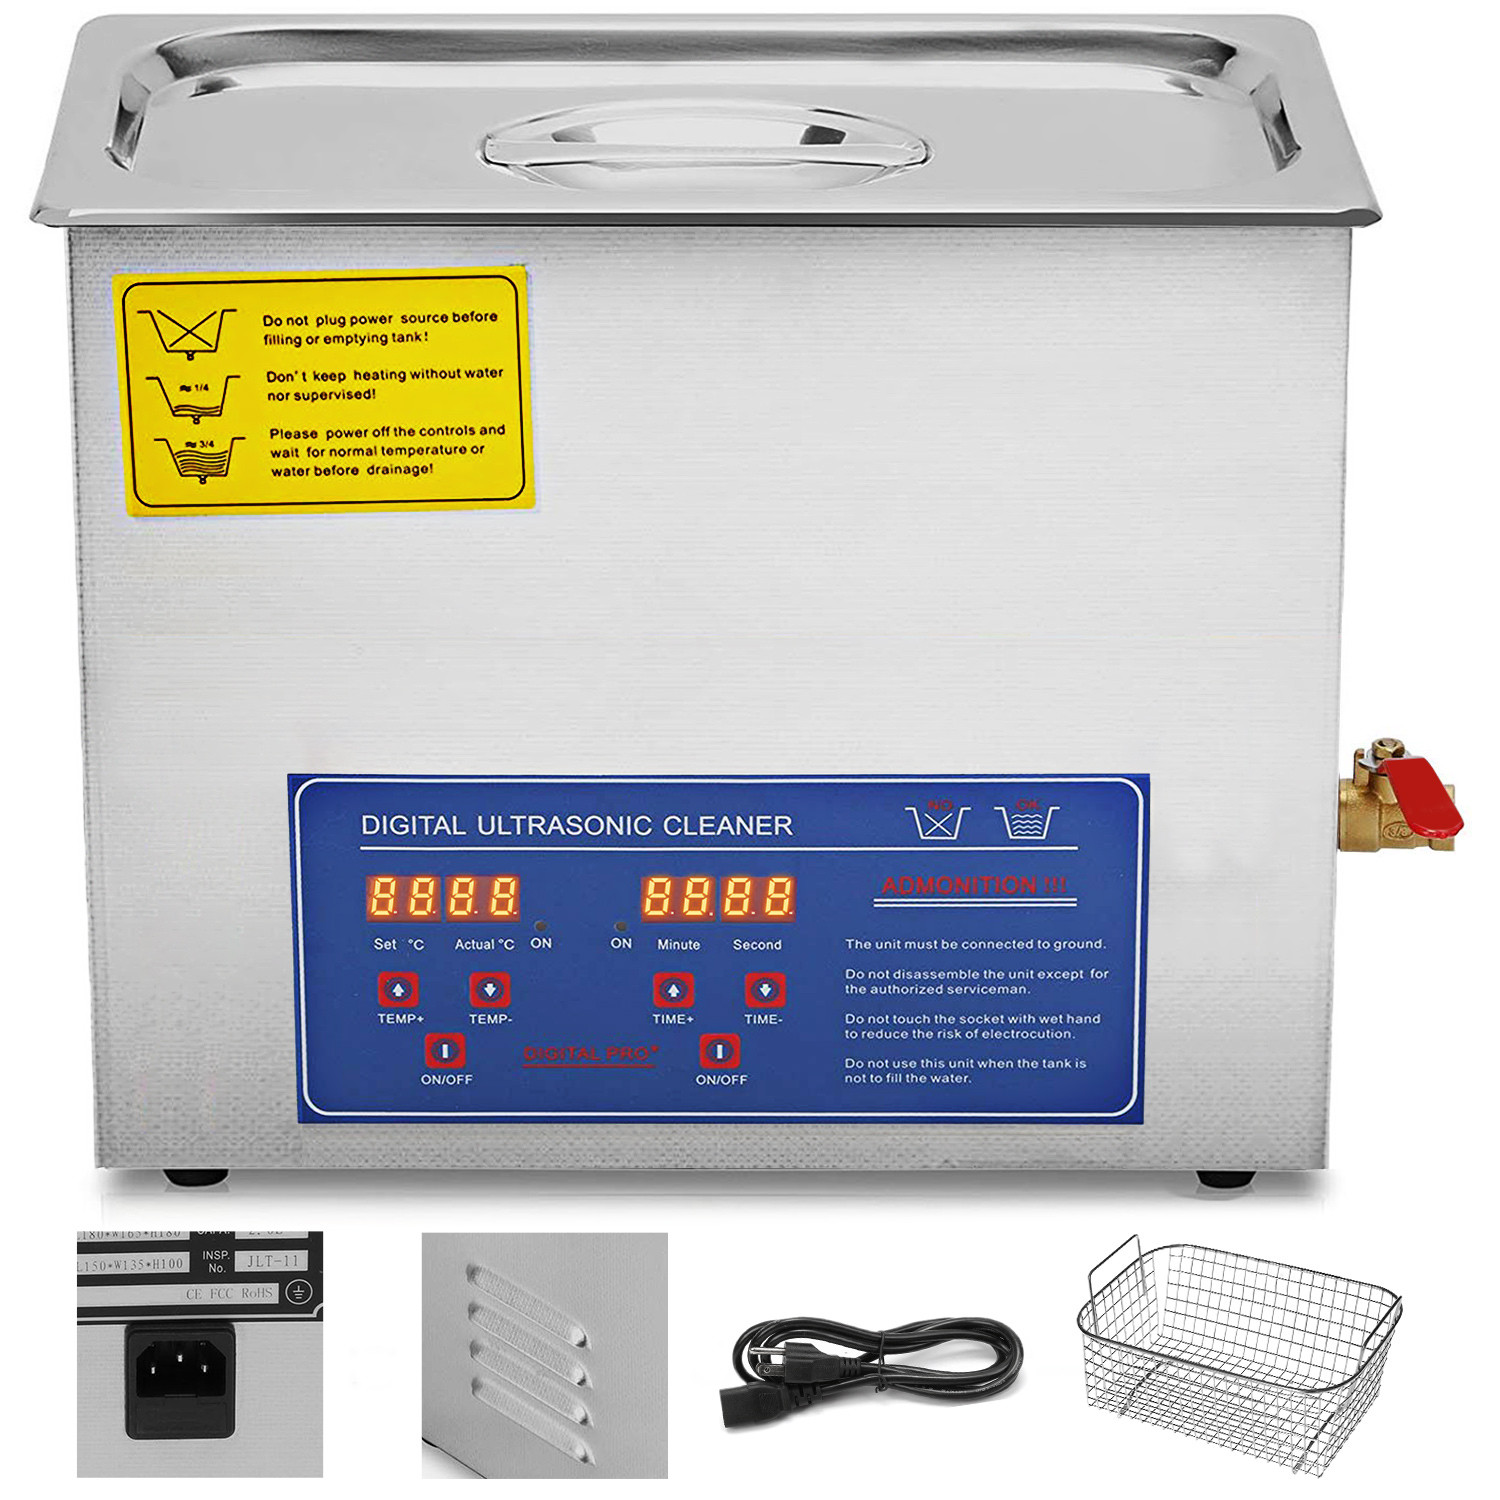 Multi-Ultrasonic-Cleaner-Supplies-Jewelry-1-3-2L-3L-6L-10L-15L-22L-30L thumbnail 84